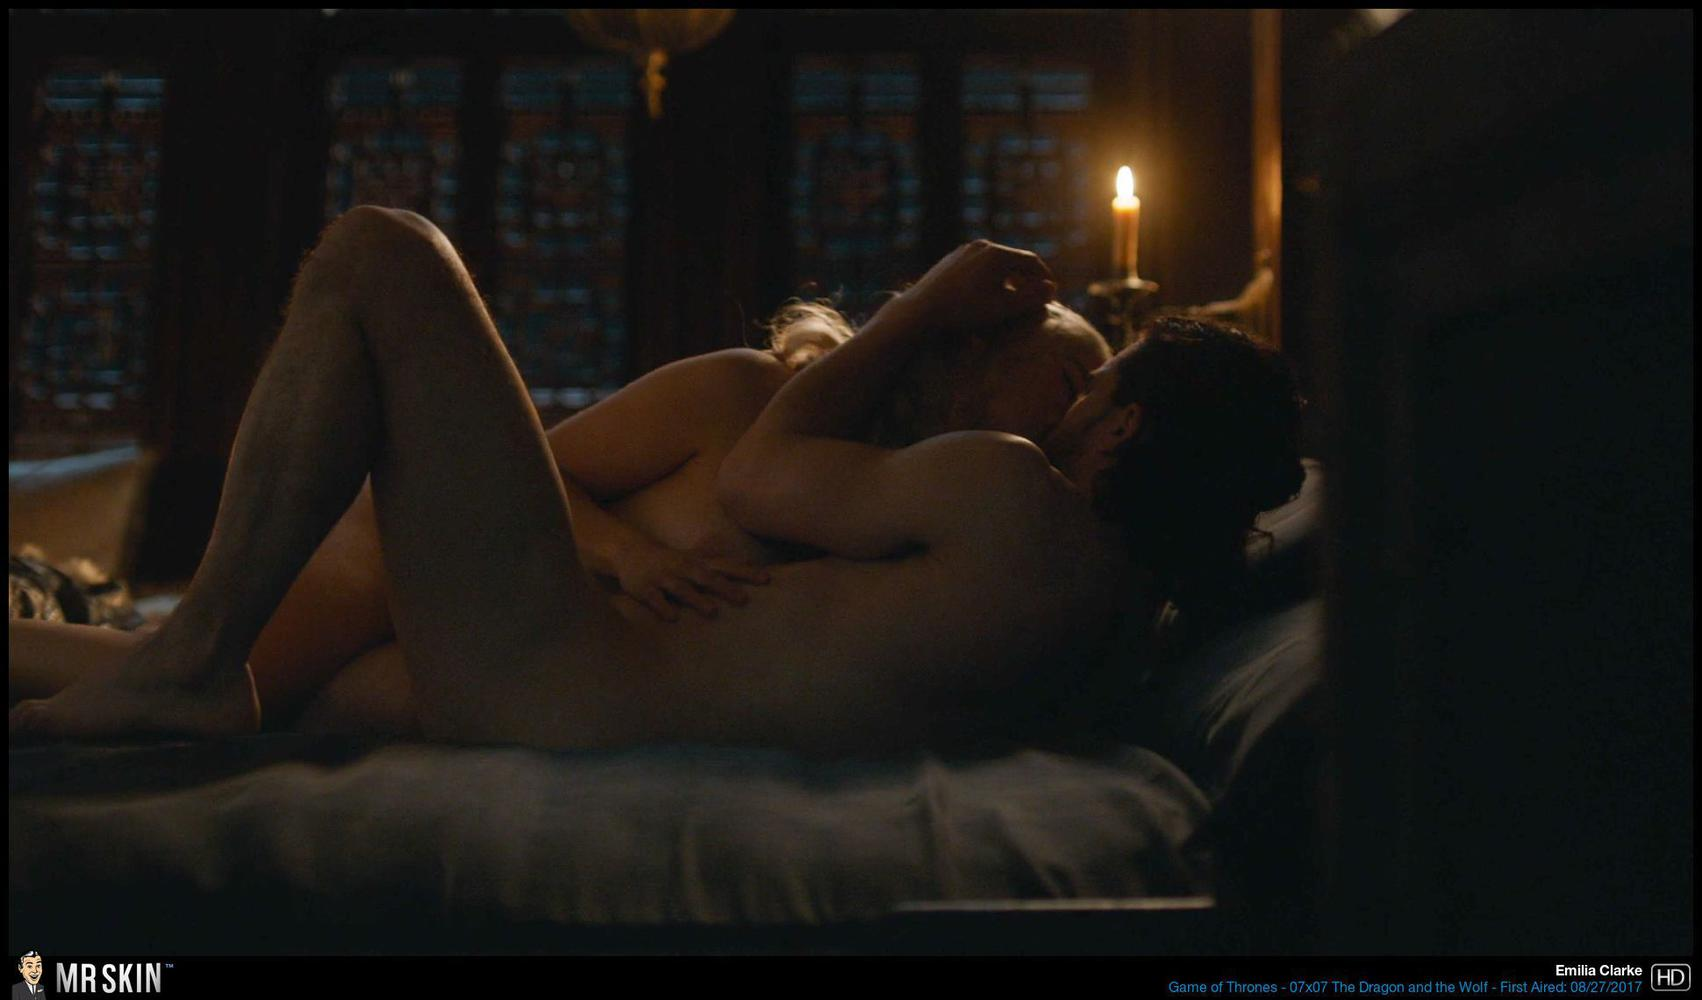 21 Nude Pics tv nudity report: game of thrones finale, 21 thunder, animal